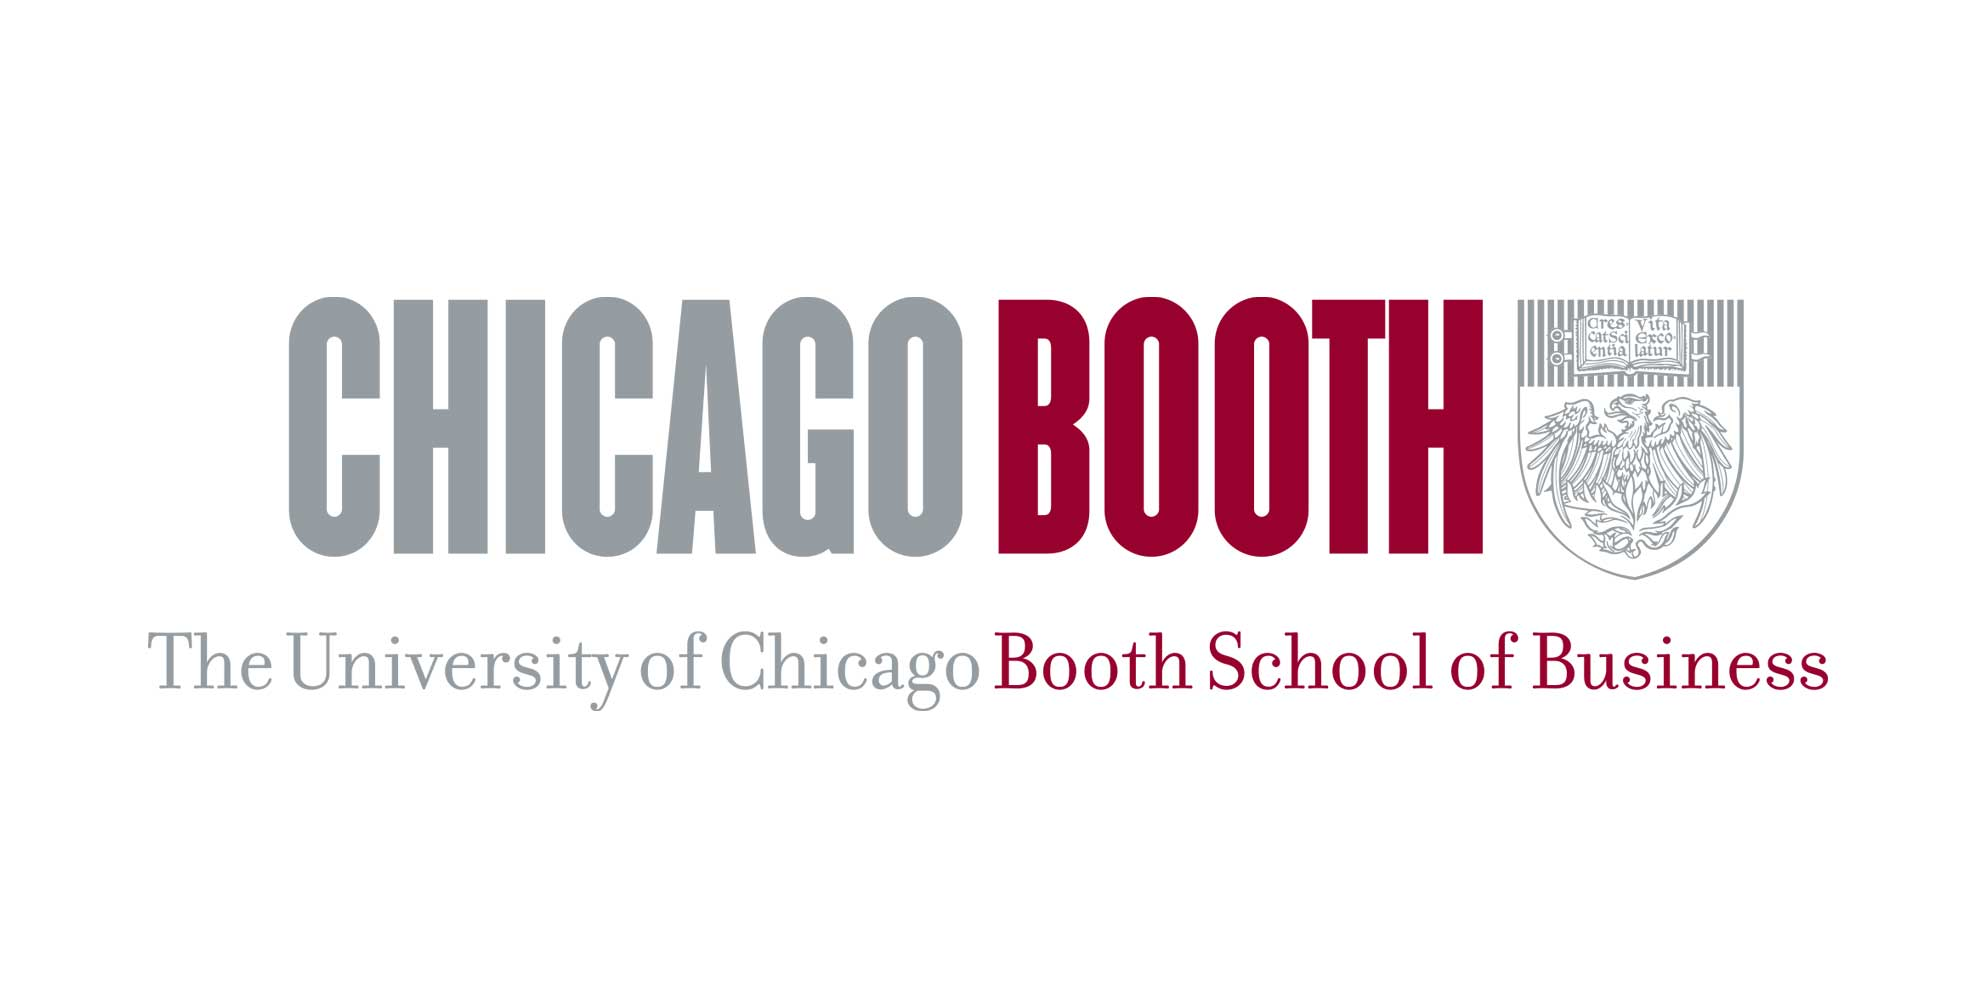 chicago booth mba essay analysis 2016 17 33437 21152 21733 22823 23416 24067 26031 21830 23416 38498  chicago booth mba essay analysis 2016 17 33437211522173322823234162406726031218302341638498